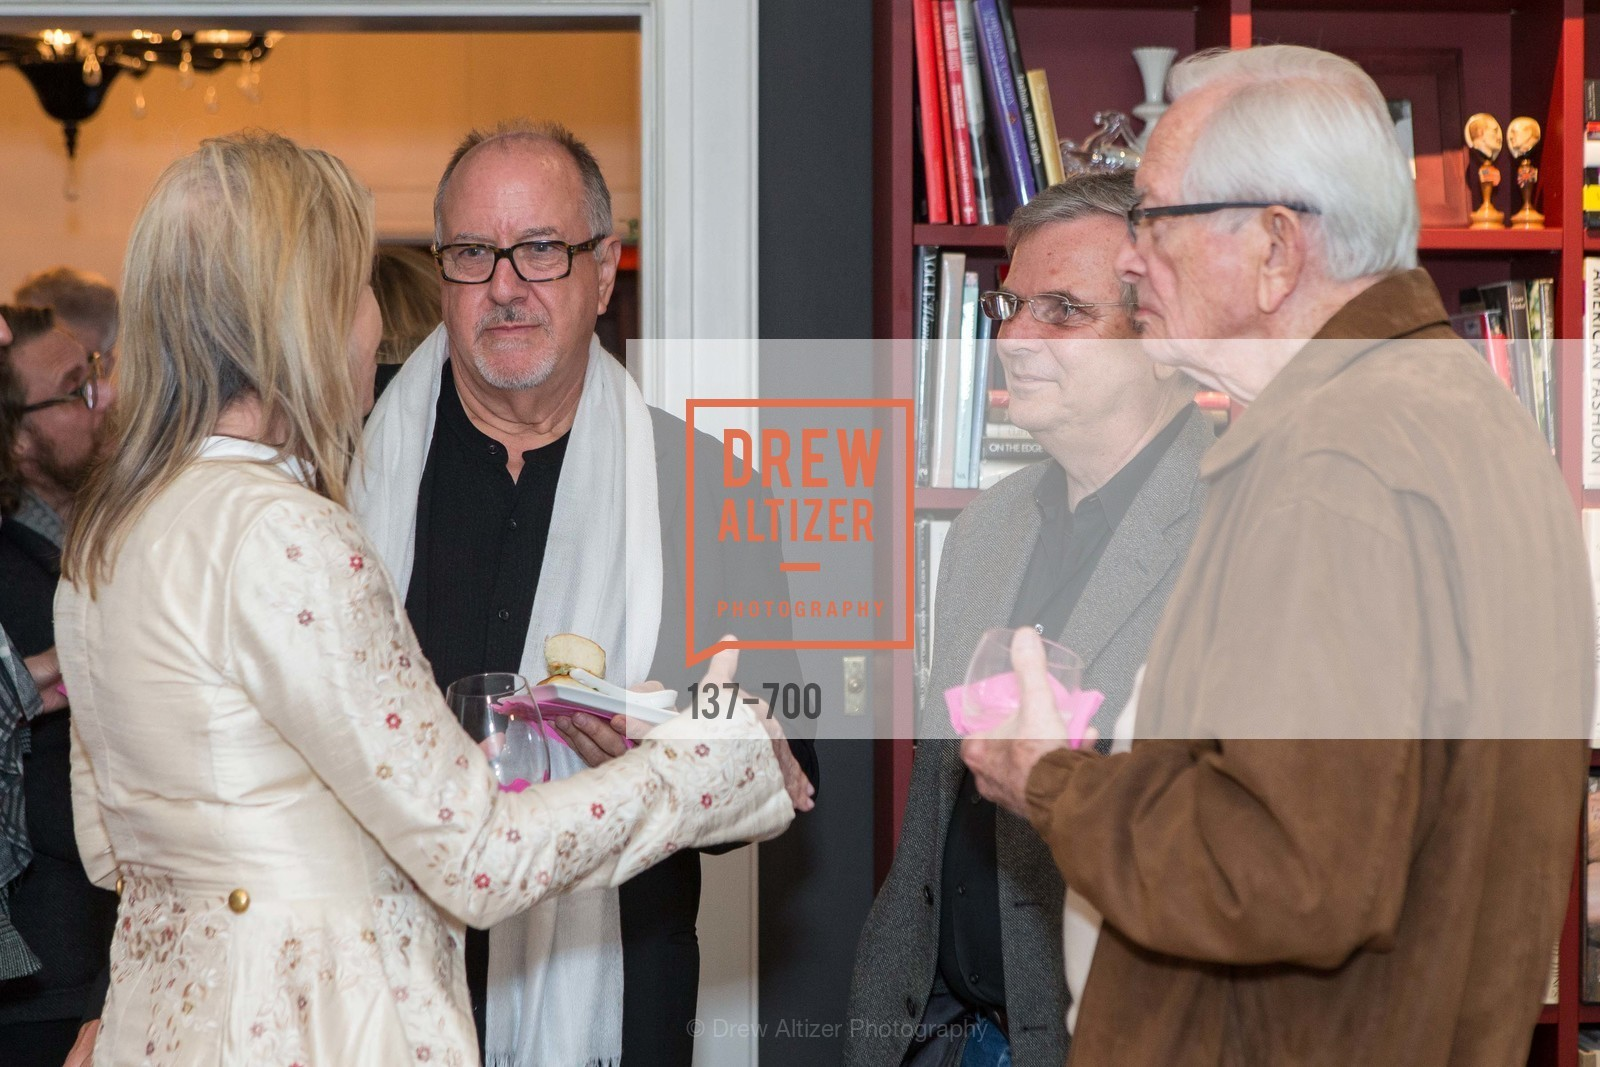 Gary Malkin, Greg Schneider, SUKEY FORBES' Book Signing, US, May 7th, 2015,Drew Altizer, Drew Altizer Photography, full-service agency, private events, San Francisco photographer, photographer california